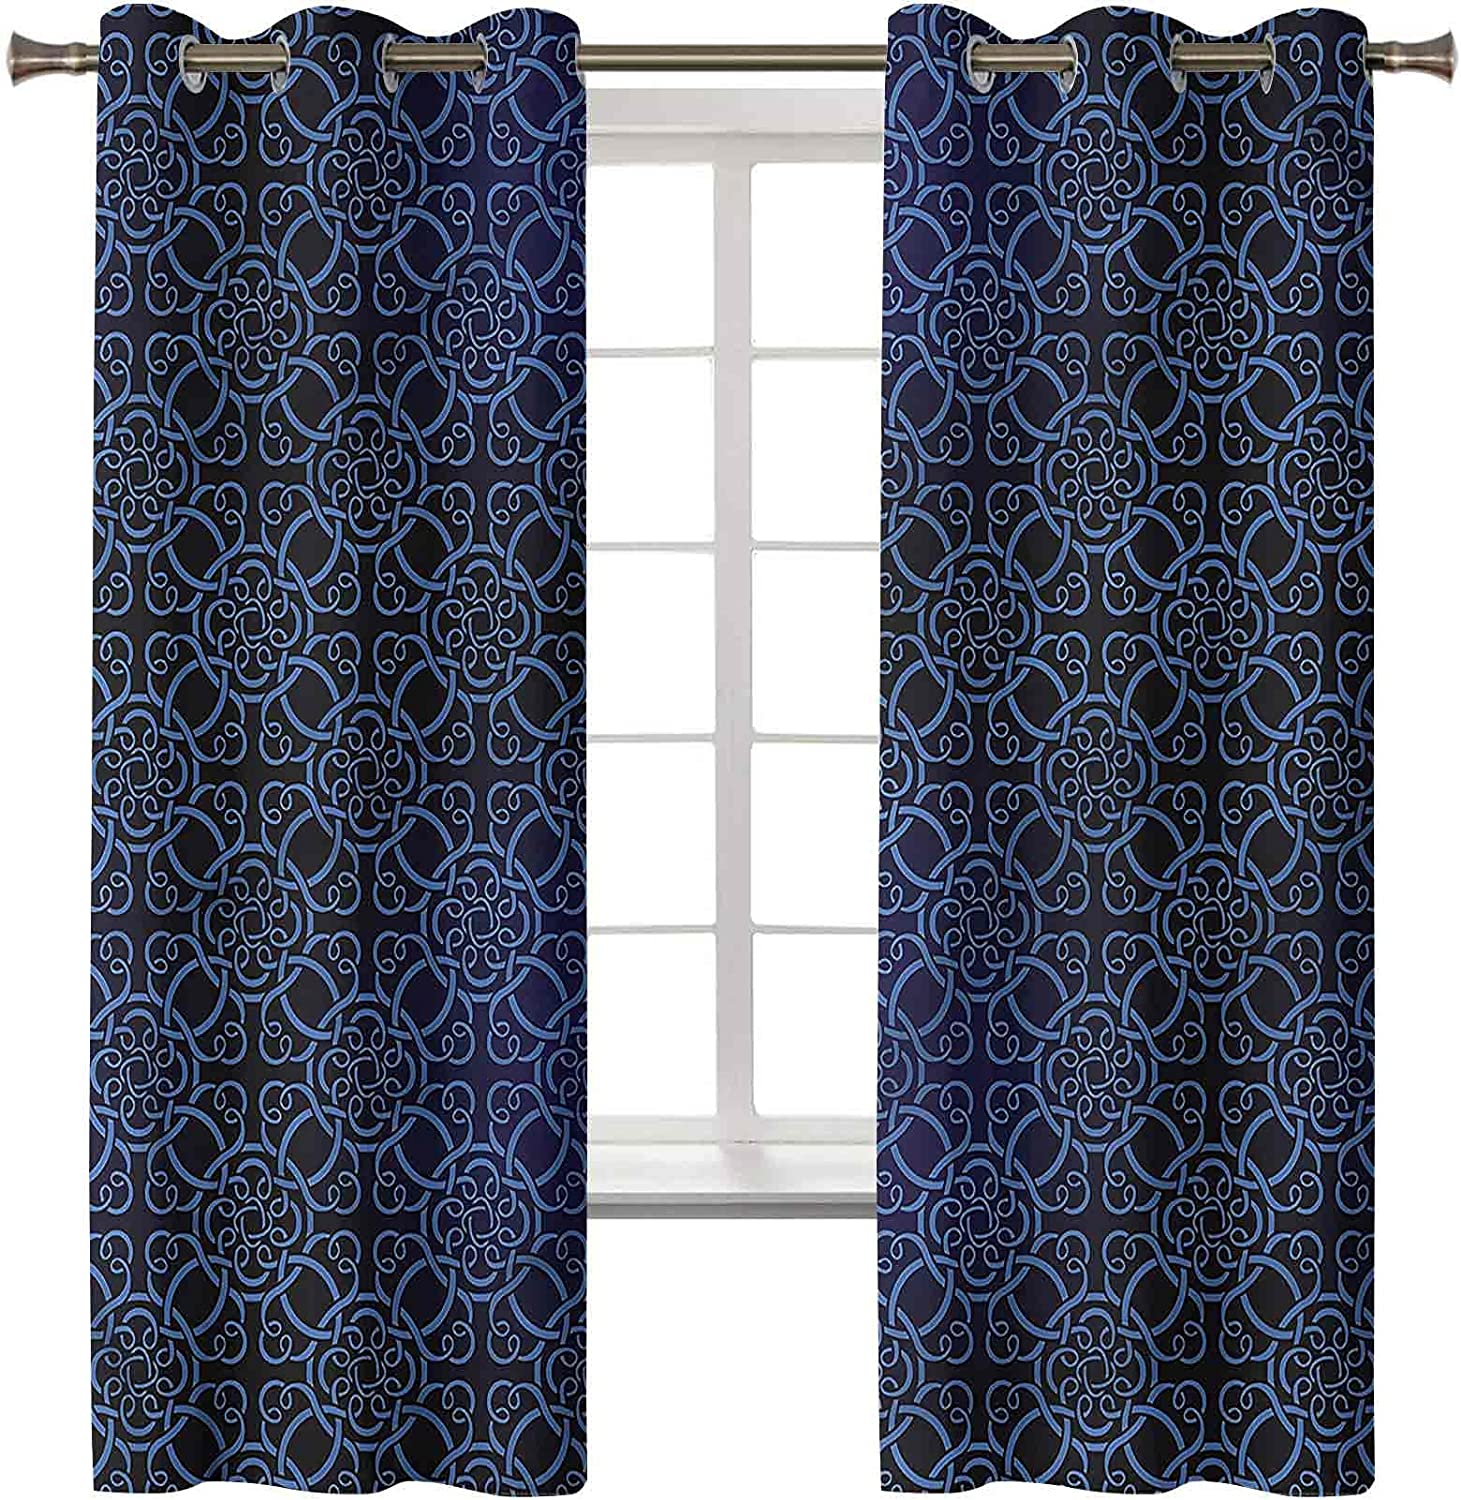 Royal Blue Chicago Mall Fashionable Curtains Drapes Set of 2 42W Panels Inch Lux 63L x